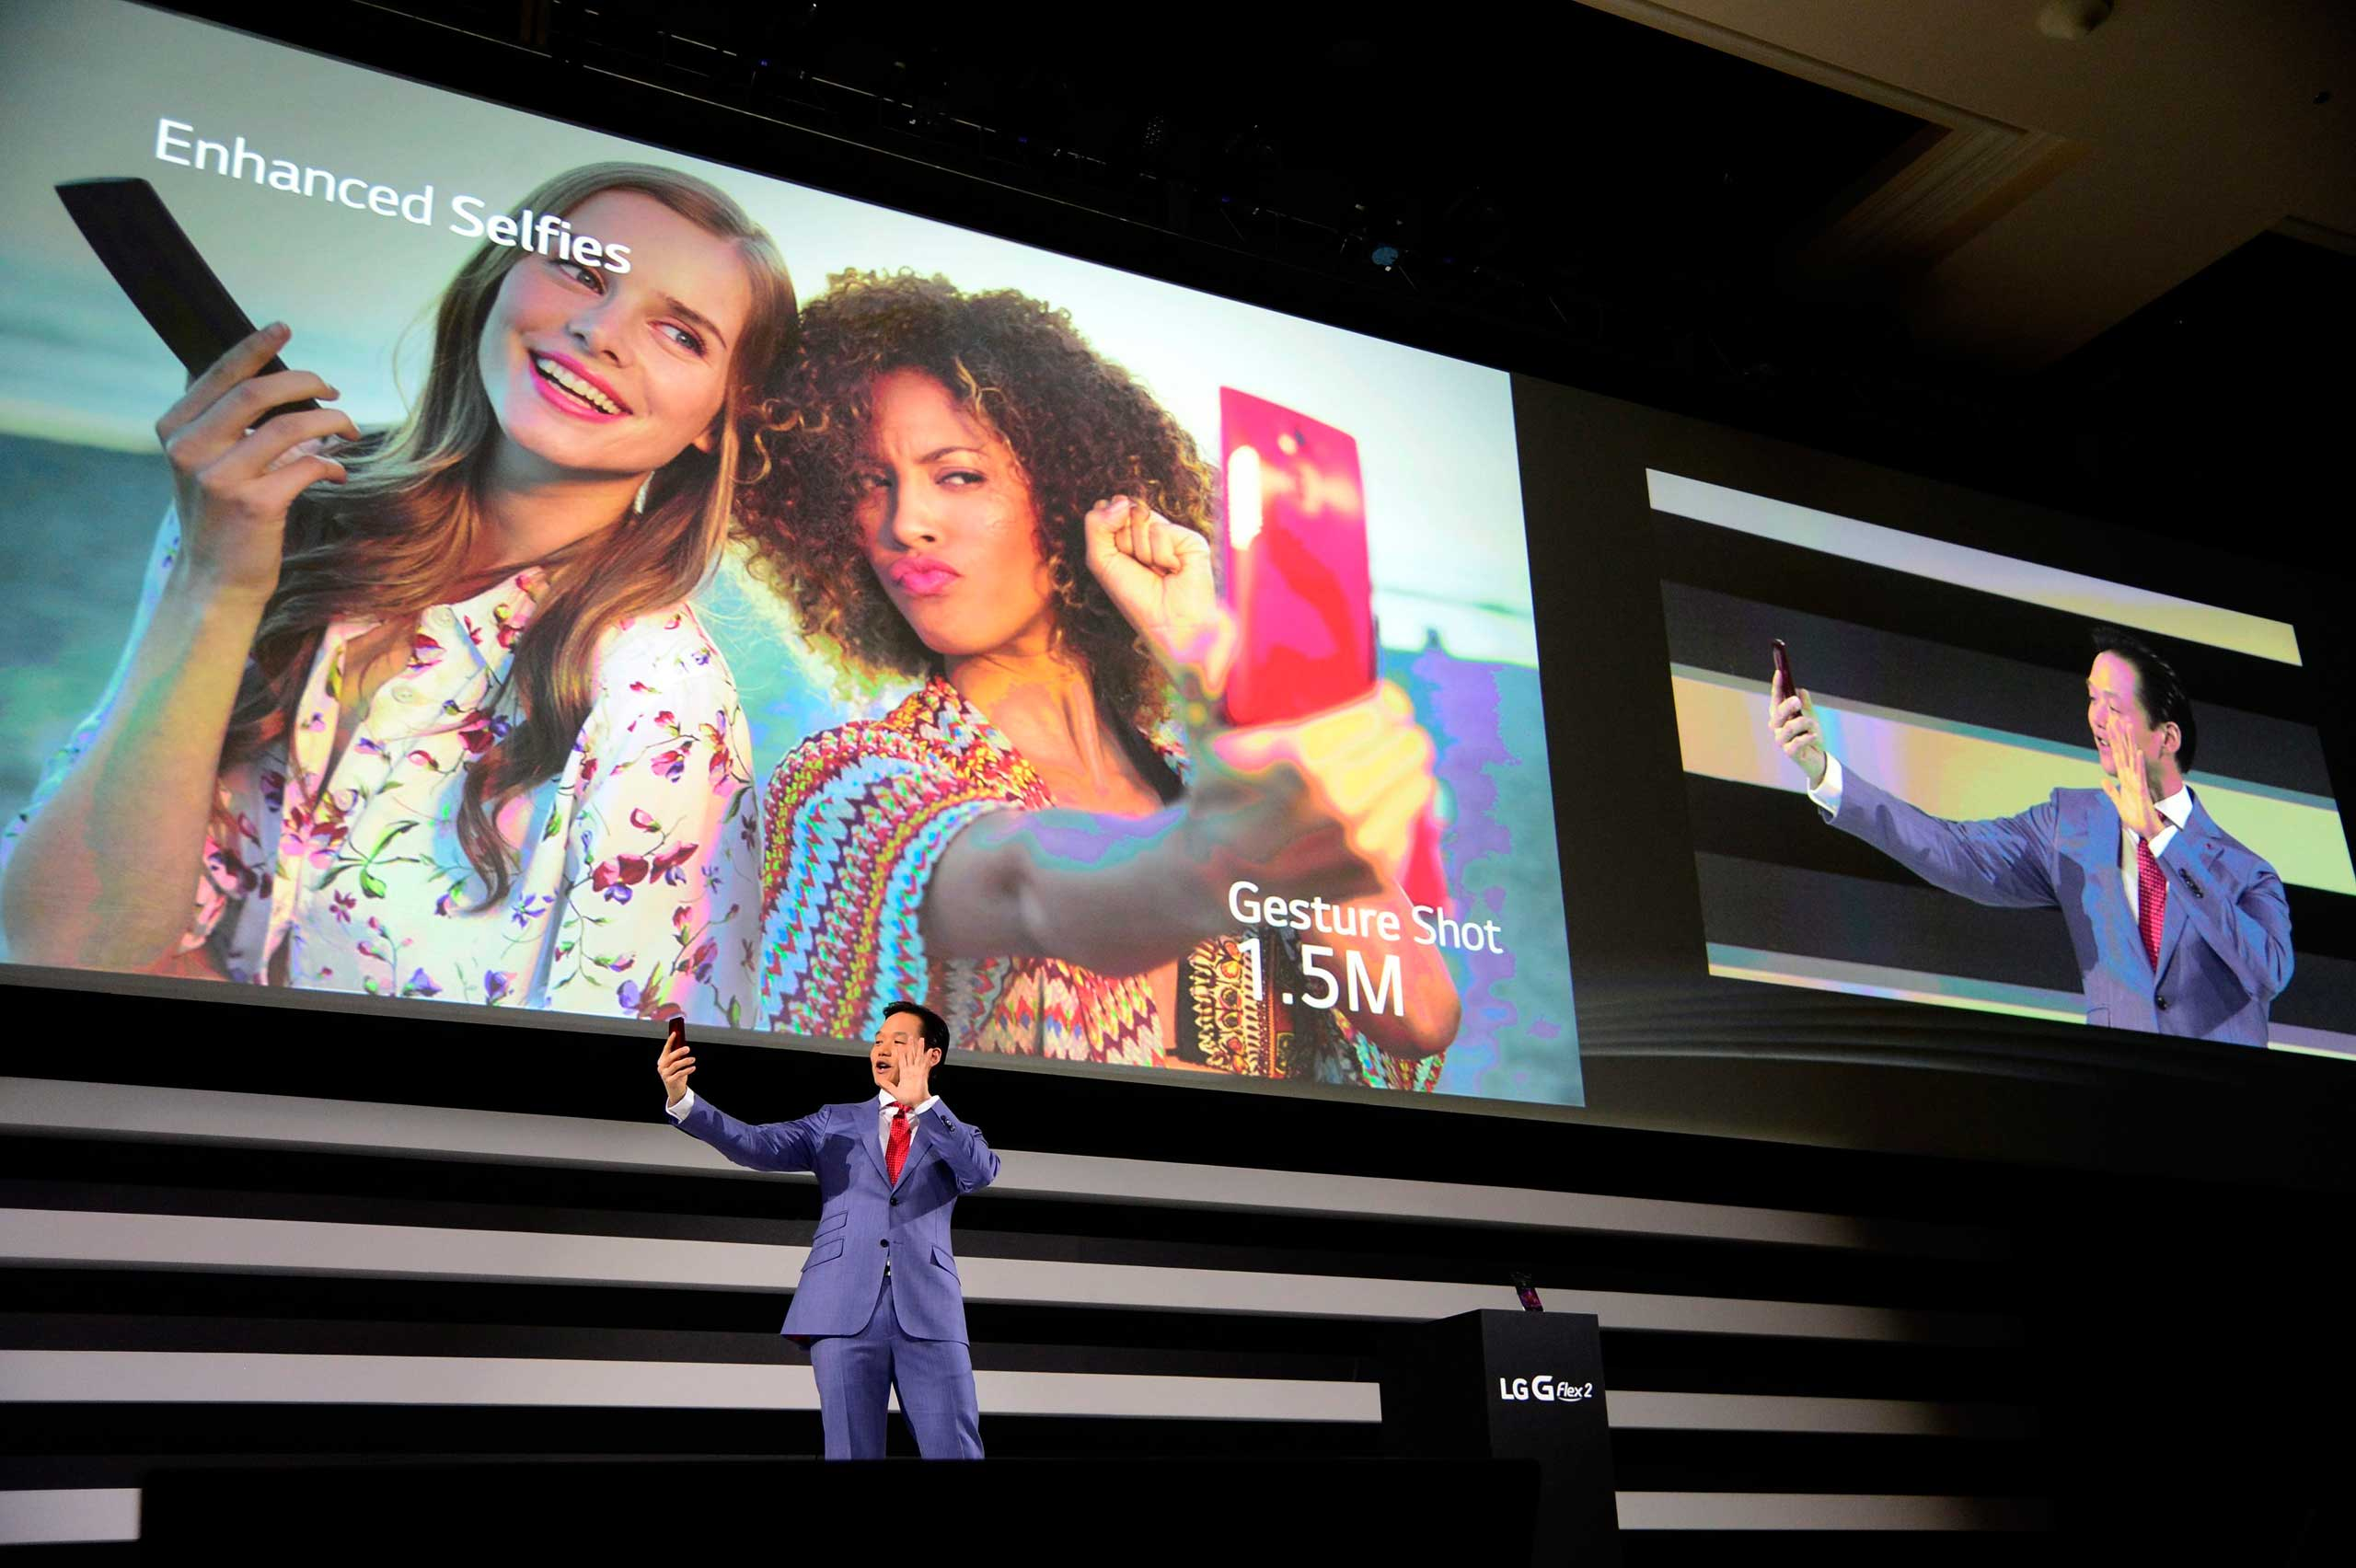 Frank Lee, Brand Marketing for LG Electronics MobileComm USA, demonstrates the enhanced selfie feature on the new LG G Flex 2 mobile phone on Jan. 5, 2015.